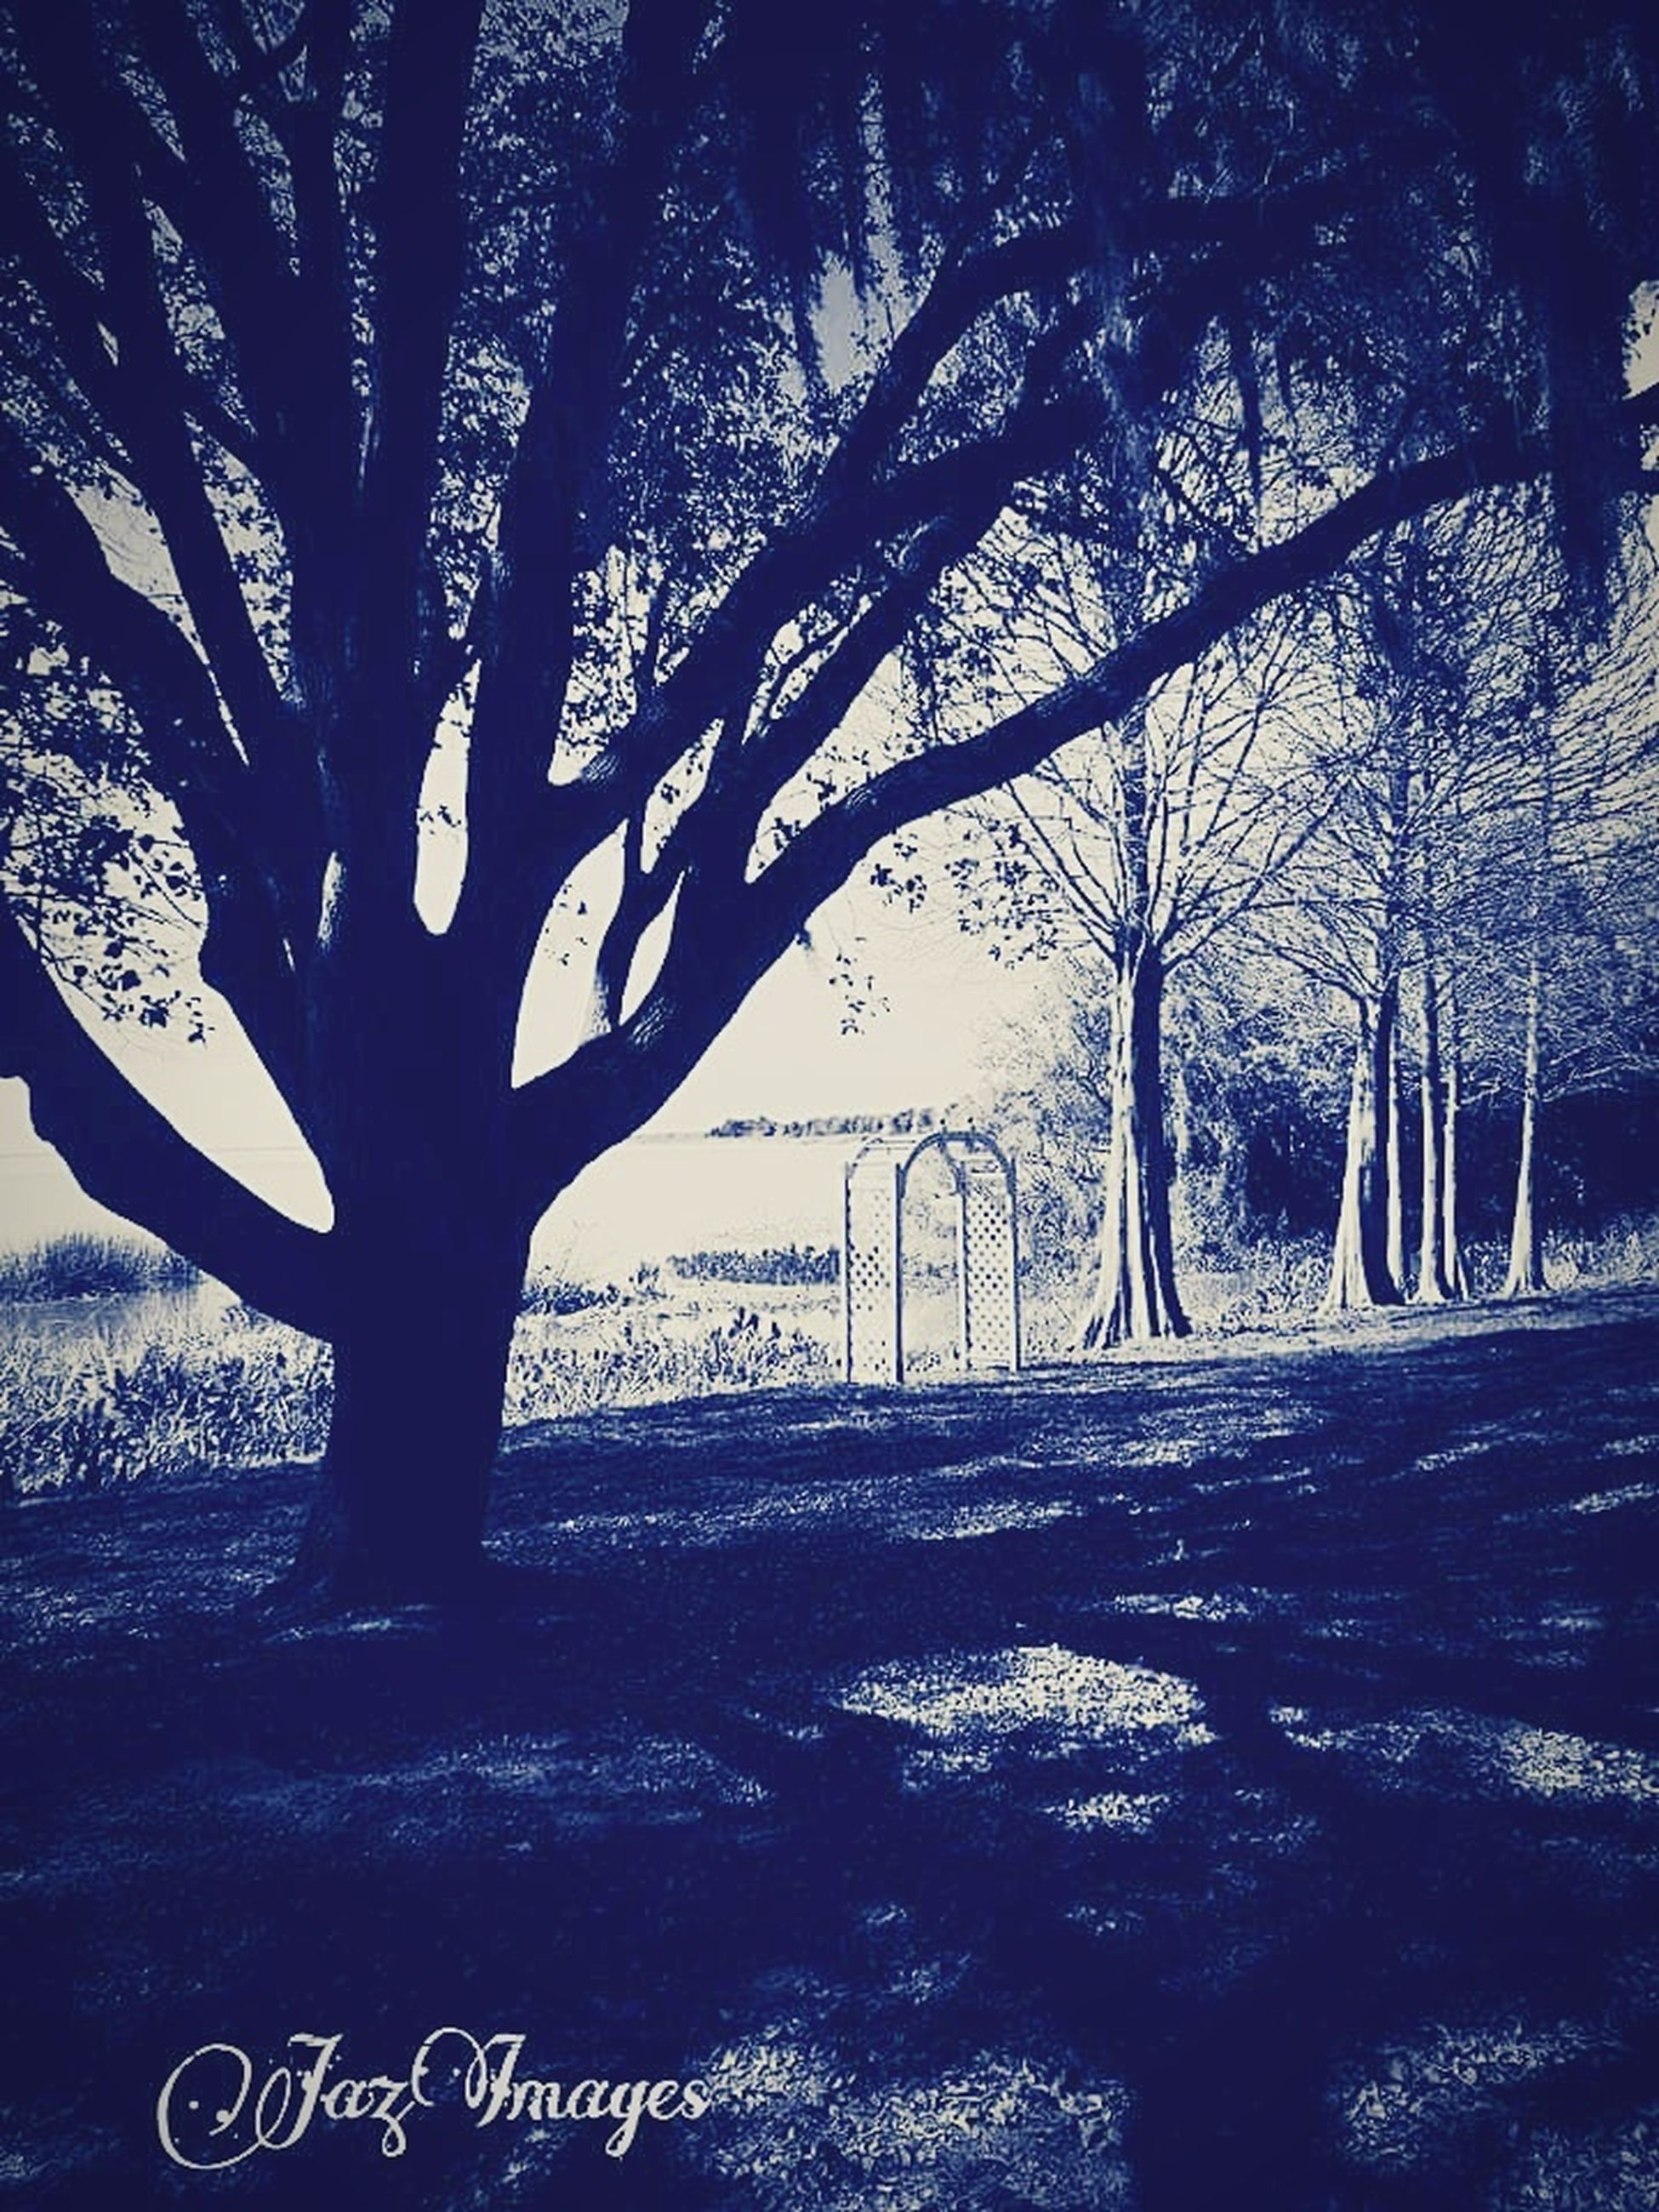 tree, plant, nature, trunk, tree trunk, growth, tranquility, land, scenics - nature, beauty in nature, tranquil scene, field, no people, day, bare tree, environment, branch, landscape, outdoors, shadow